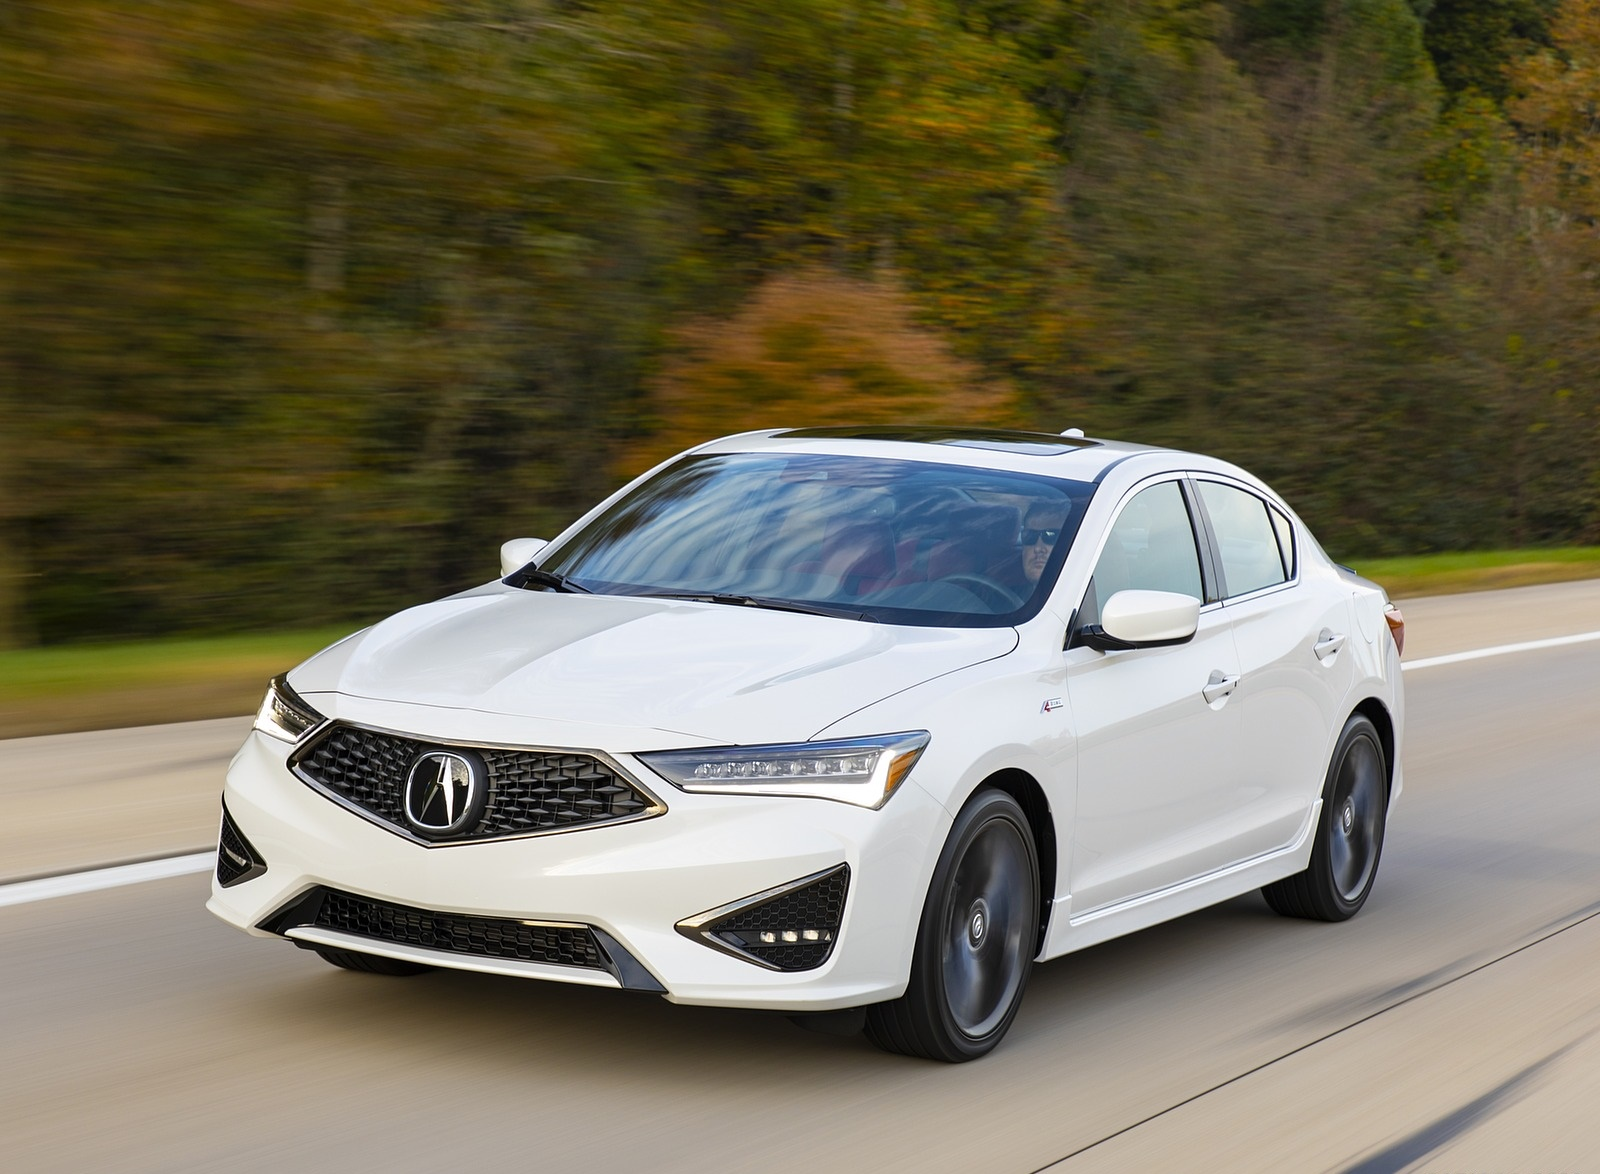 2020 Acura ILX A-Spec Front Three-Quarter Wallpapers (3)